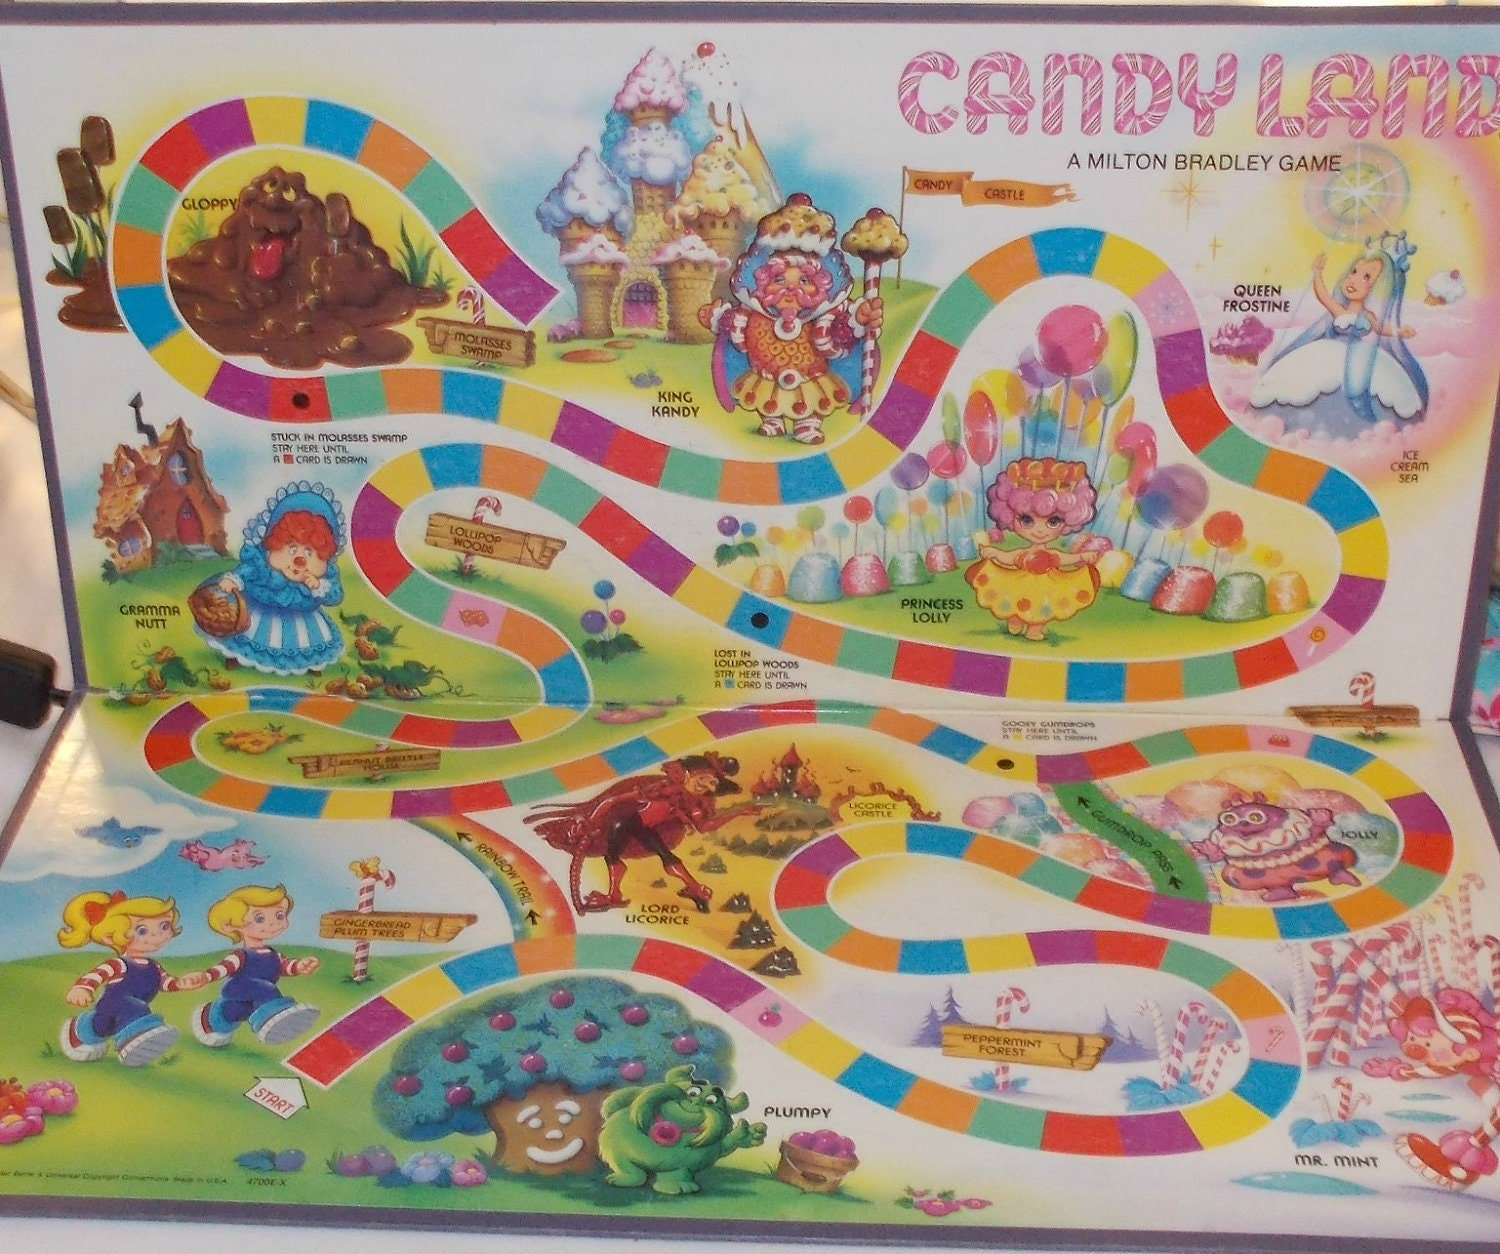 Candyland Gameboard! This was the version I had.